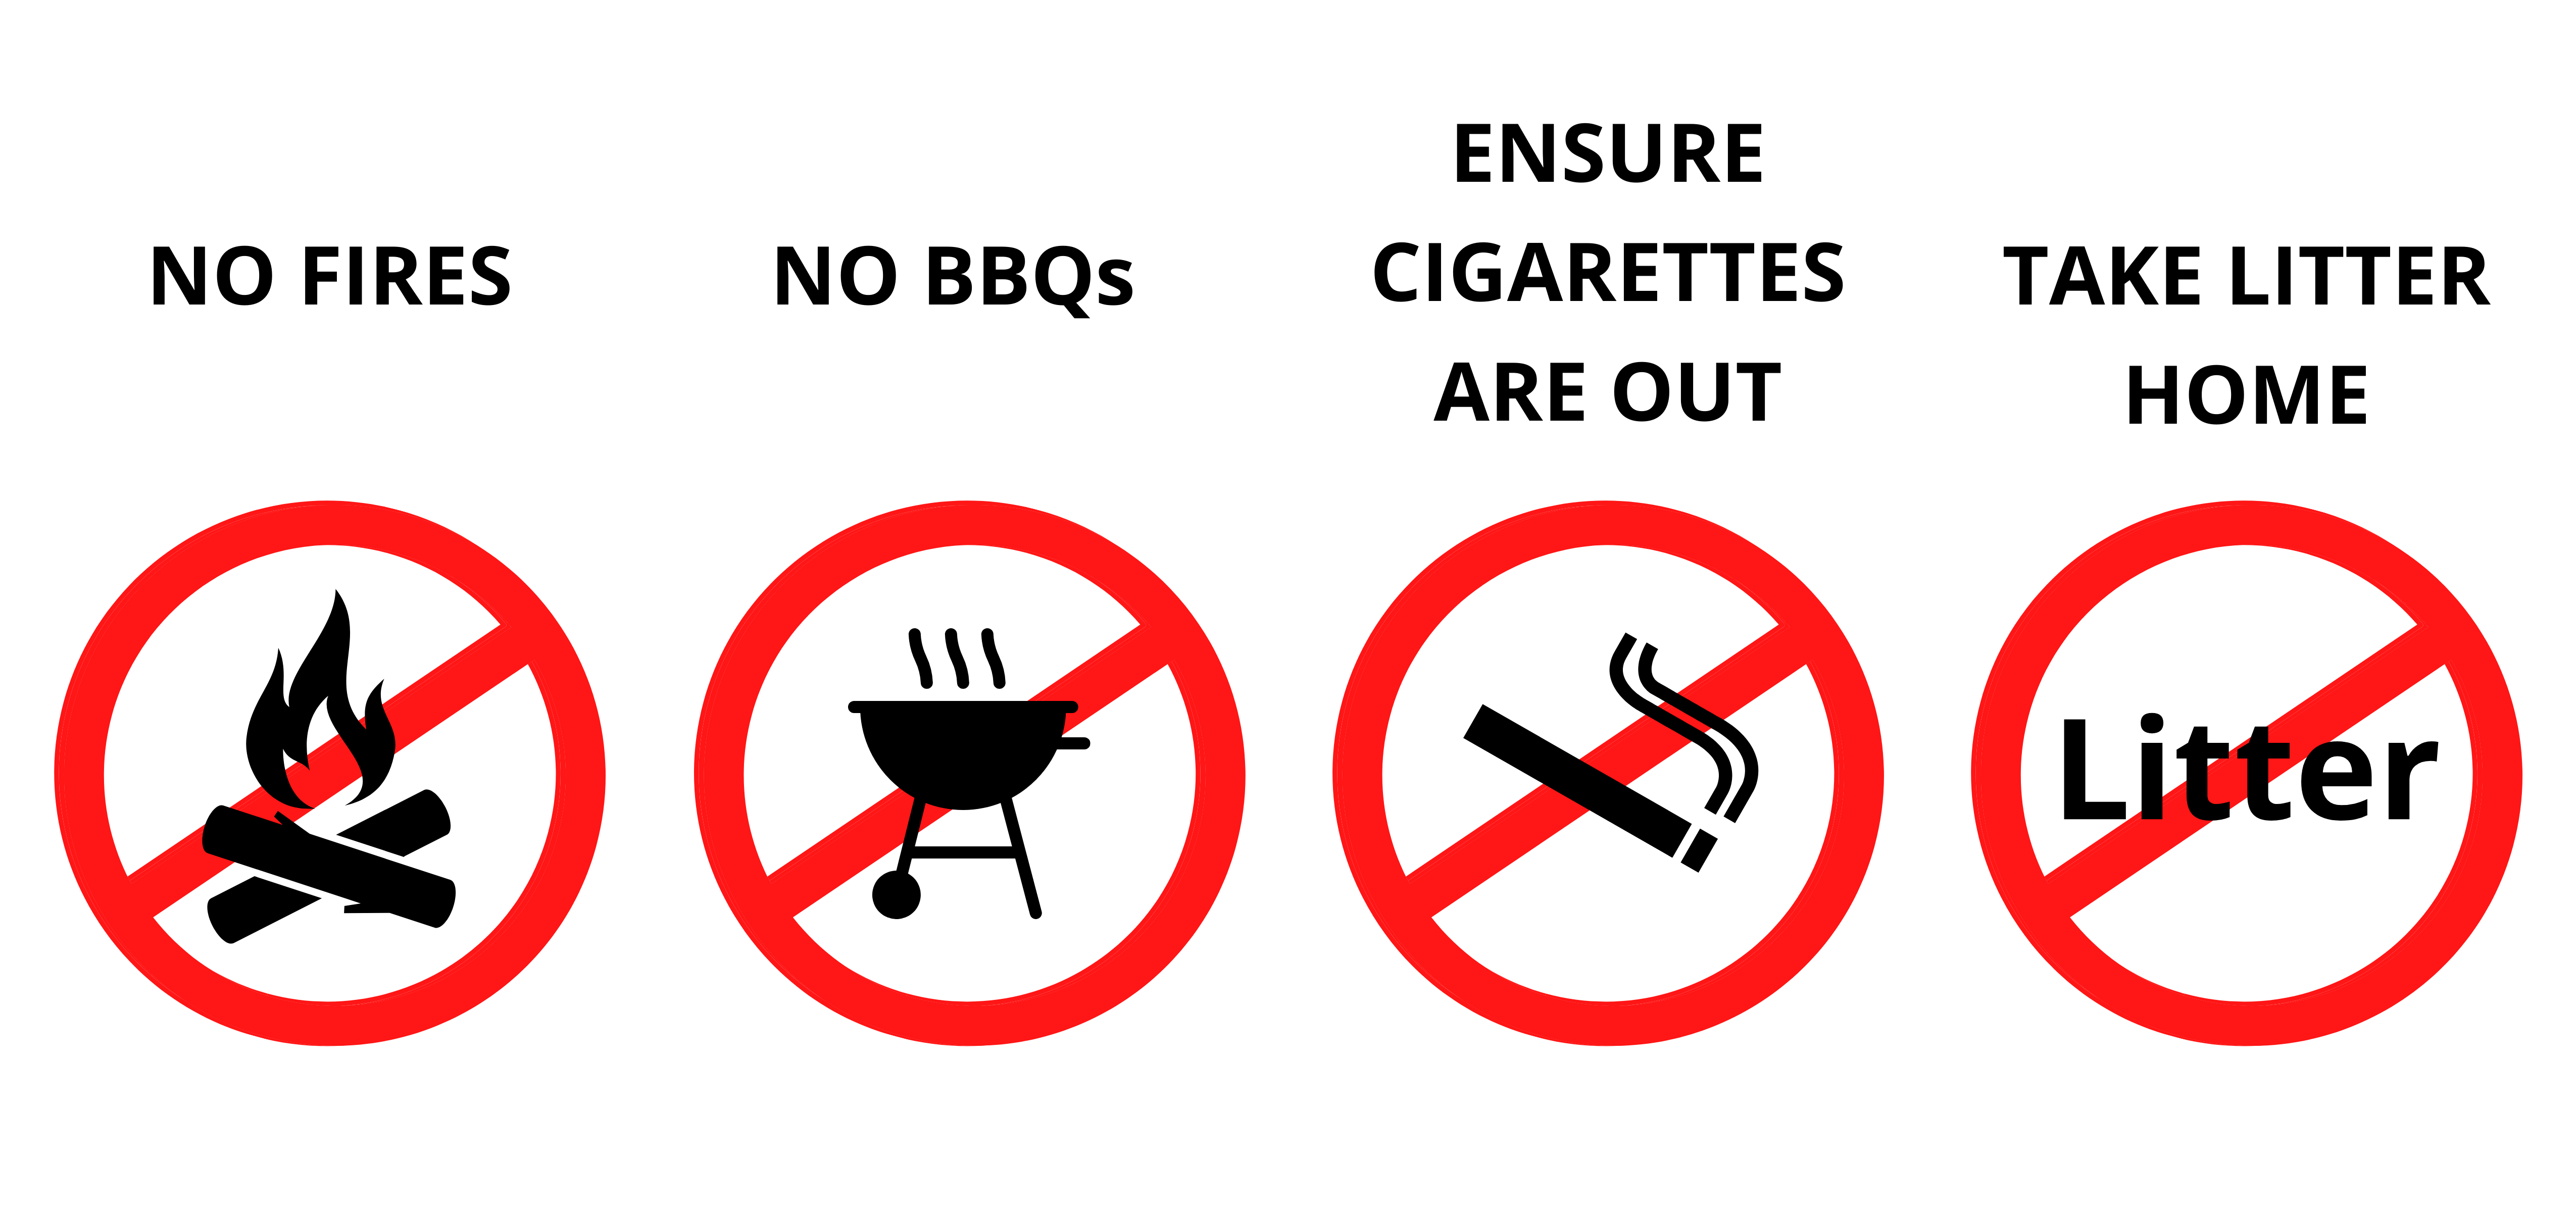 NO FIRES, NO BBQs, ENSURE CIGARETTES ARE OUT and TAKE LITTER HOME